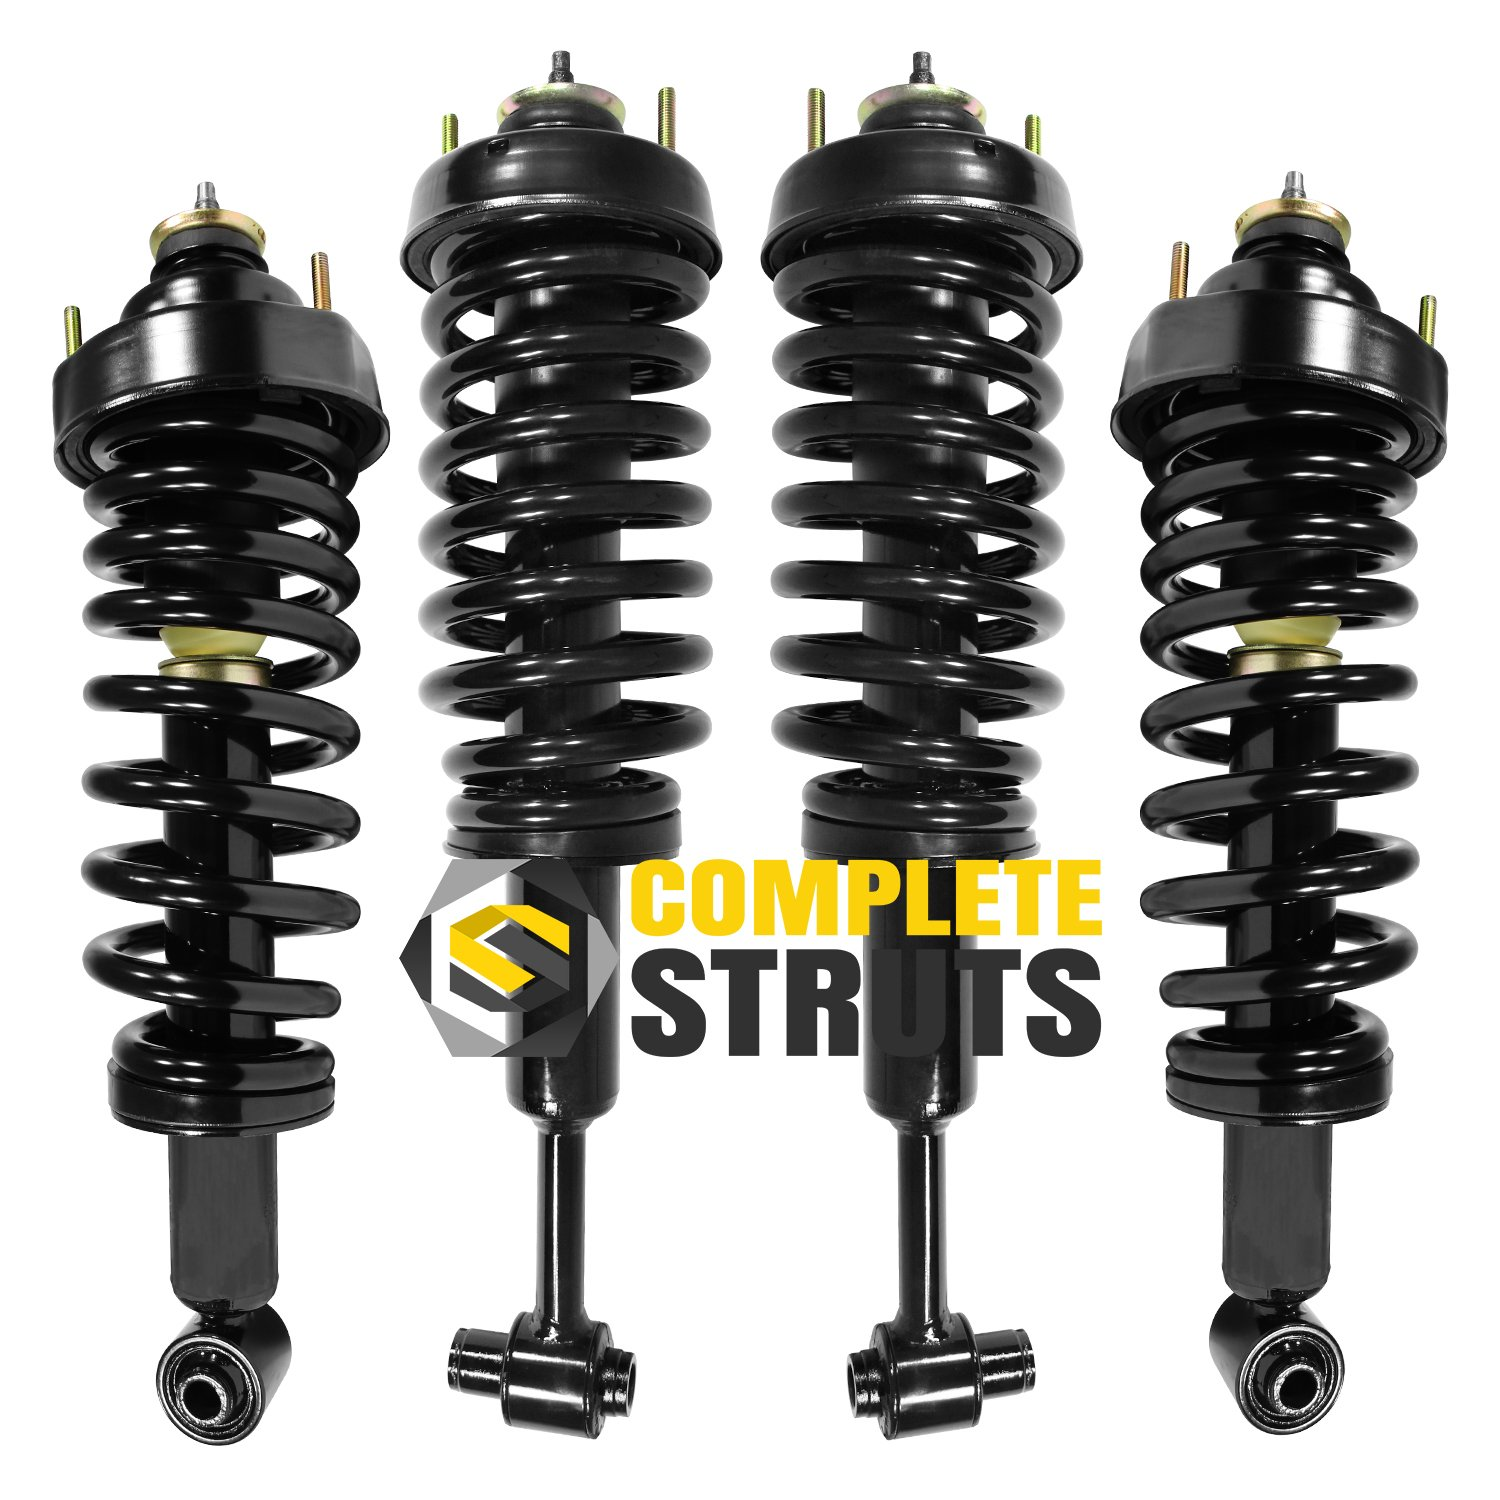 Front /& Rear Quick Complete Struts /& Coil Spring Assemblies Compatible with 2002-2003 Mercury Mountaineer Set of 4